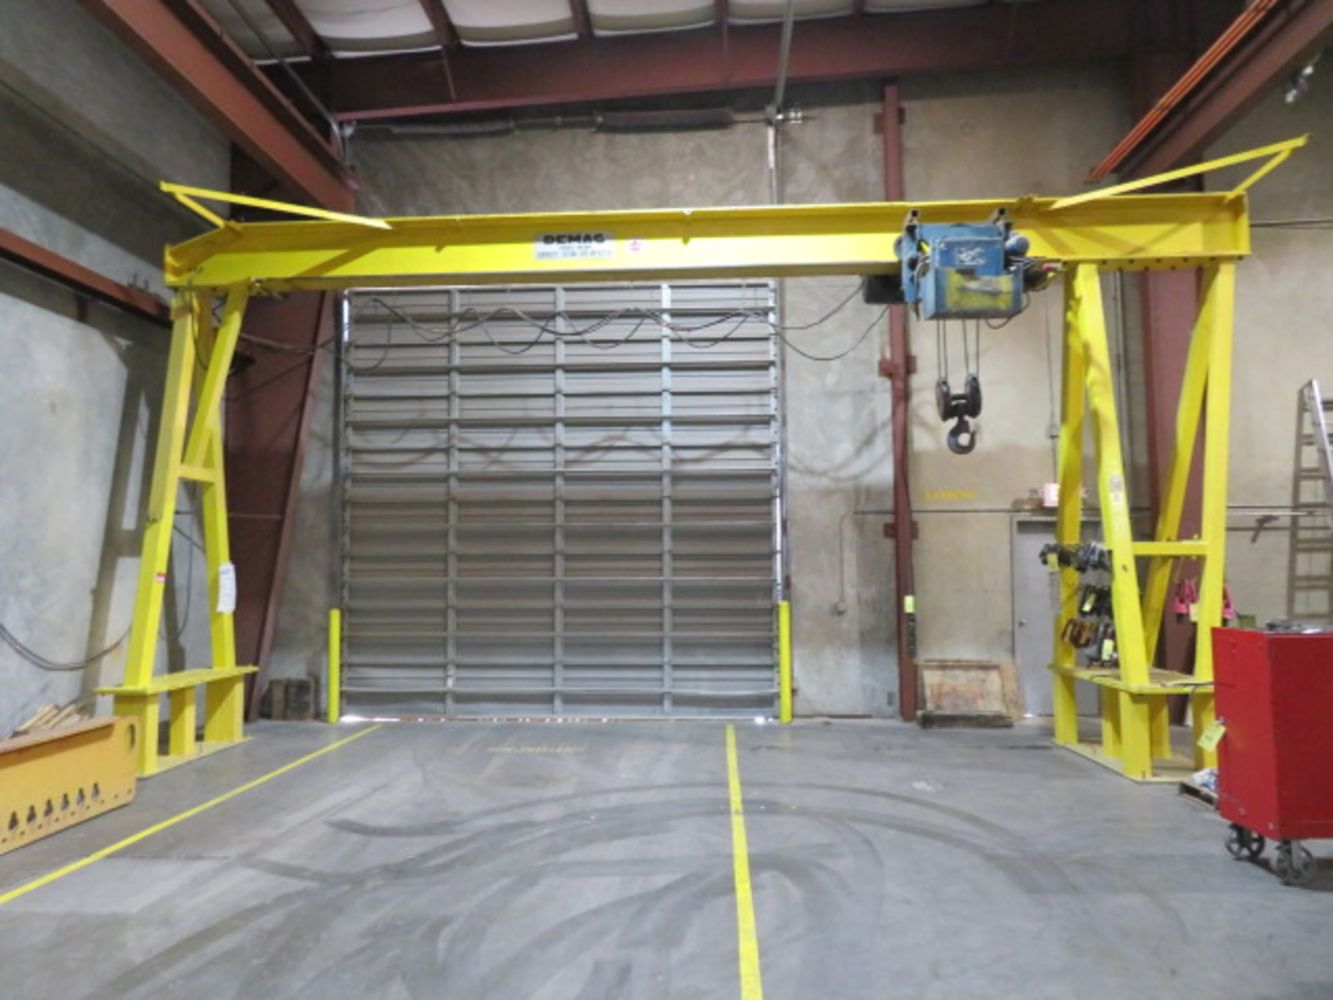 Redoe Mold South - WELL MAINTAINED MOLD SHOP EQUIPMENT